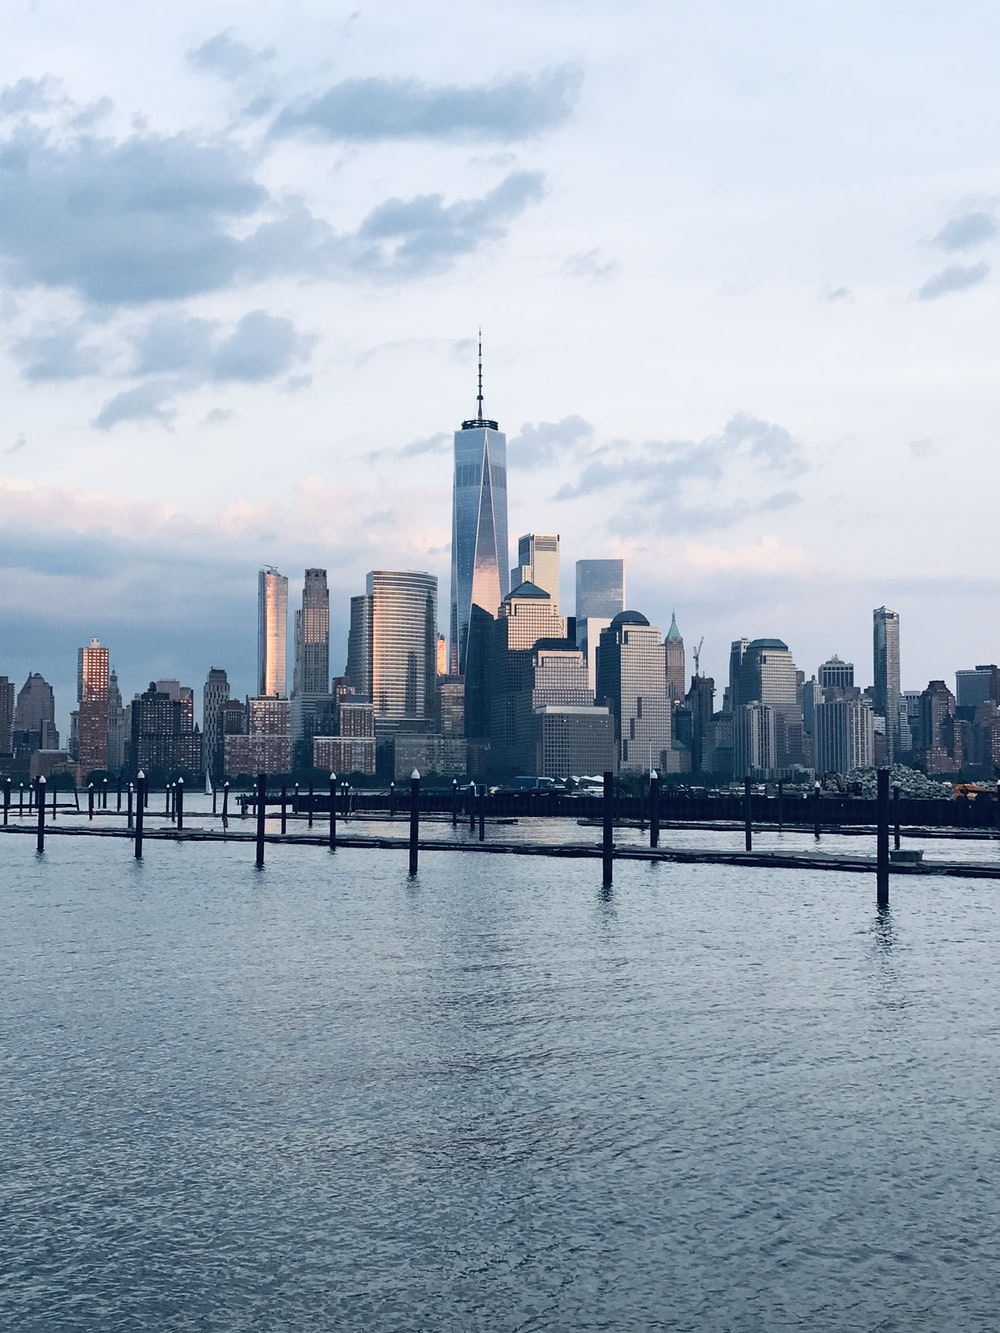 panoramic photo fo cityscape facing body of water